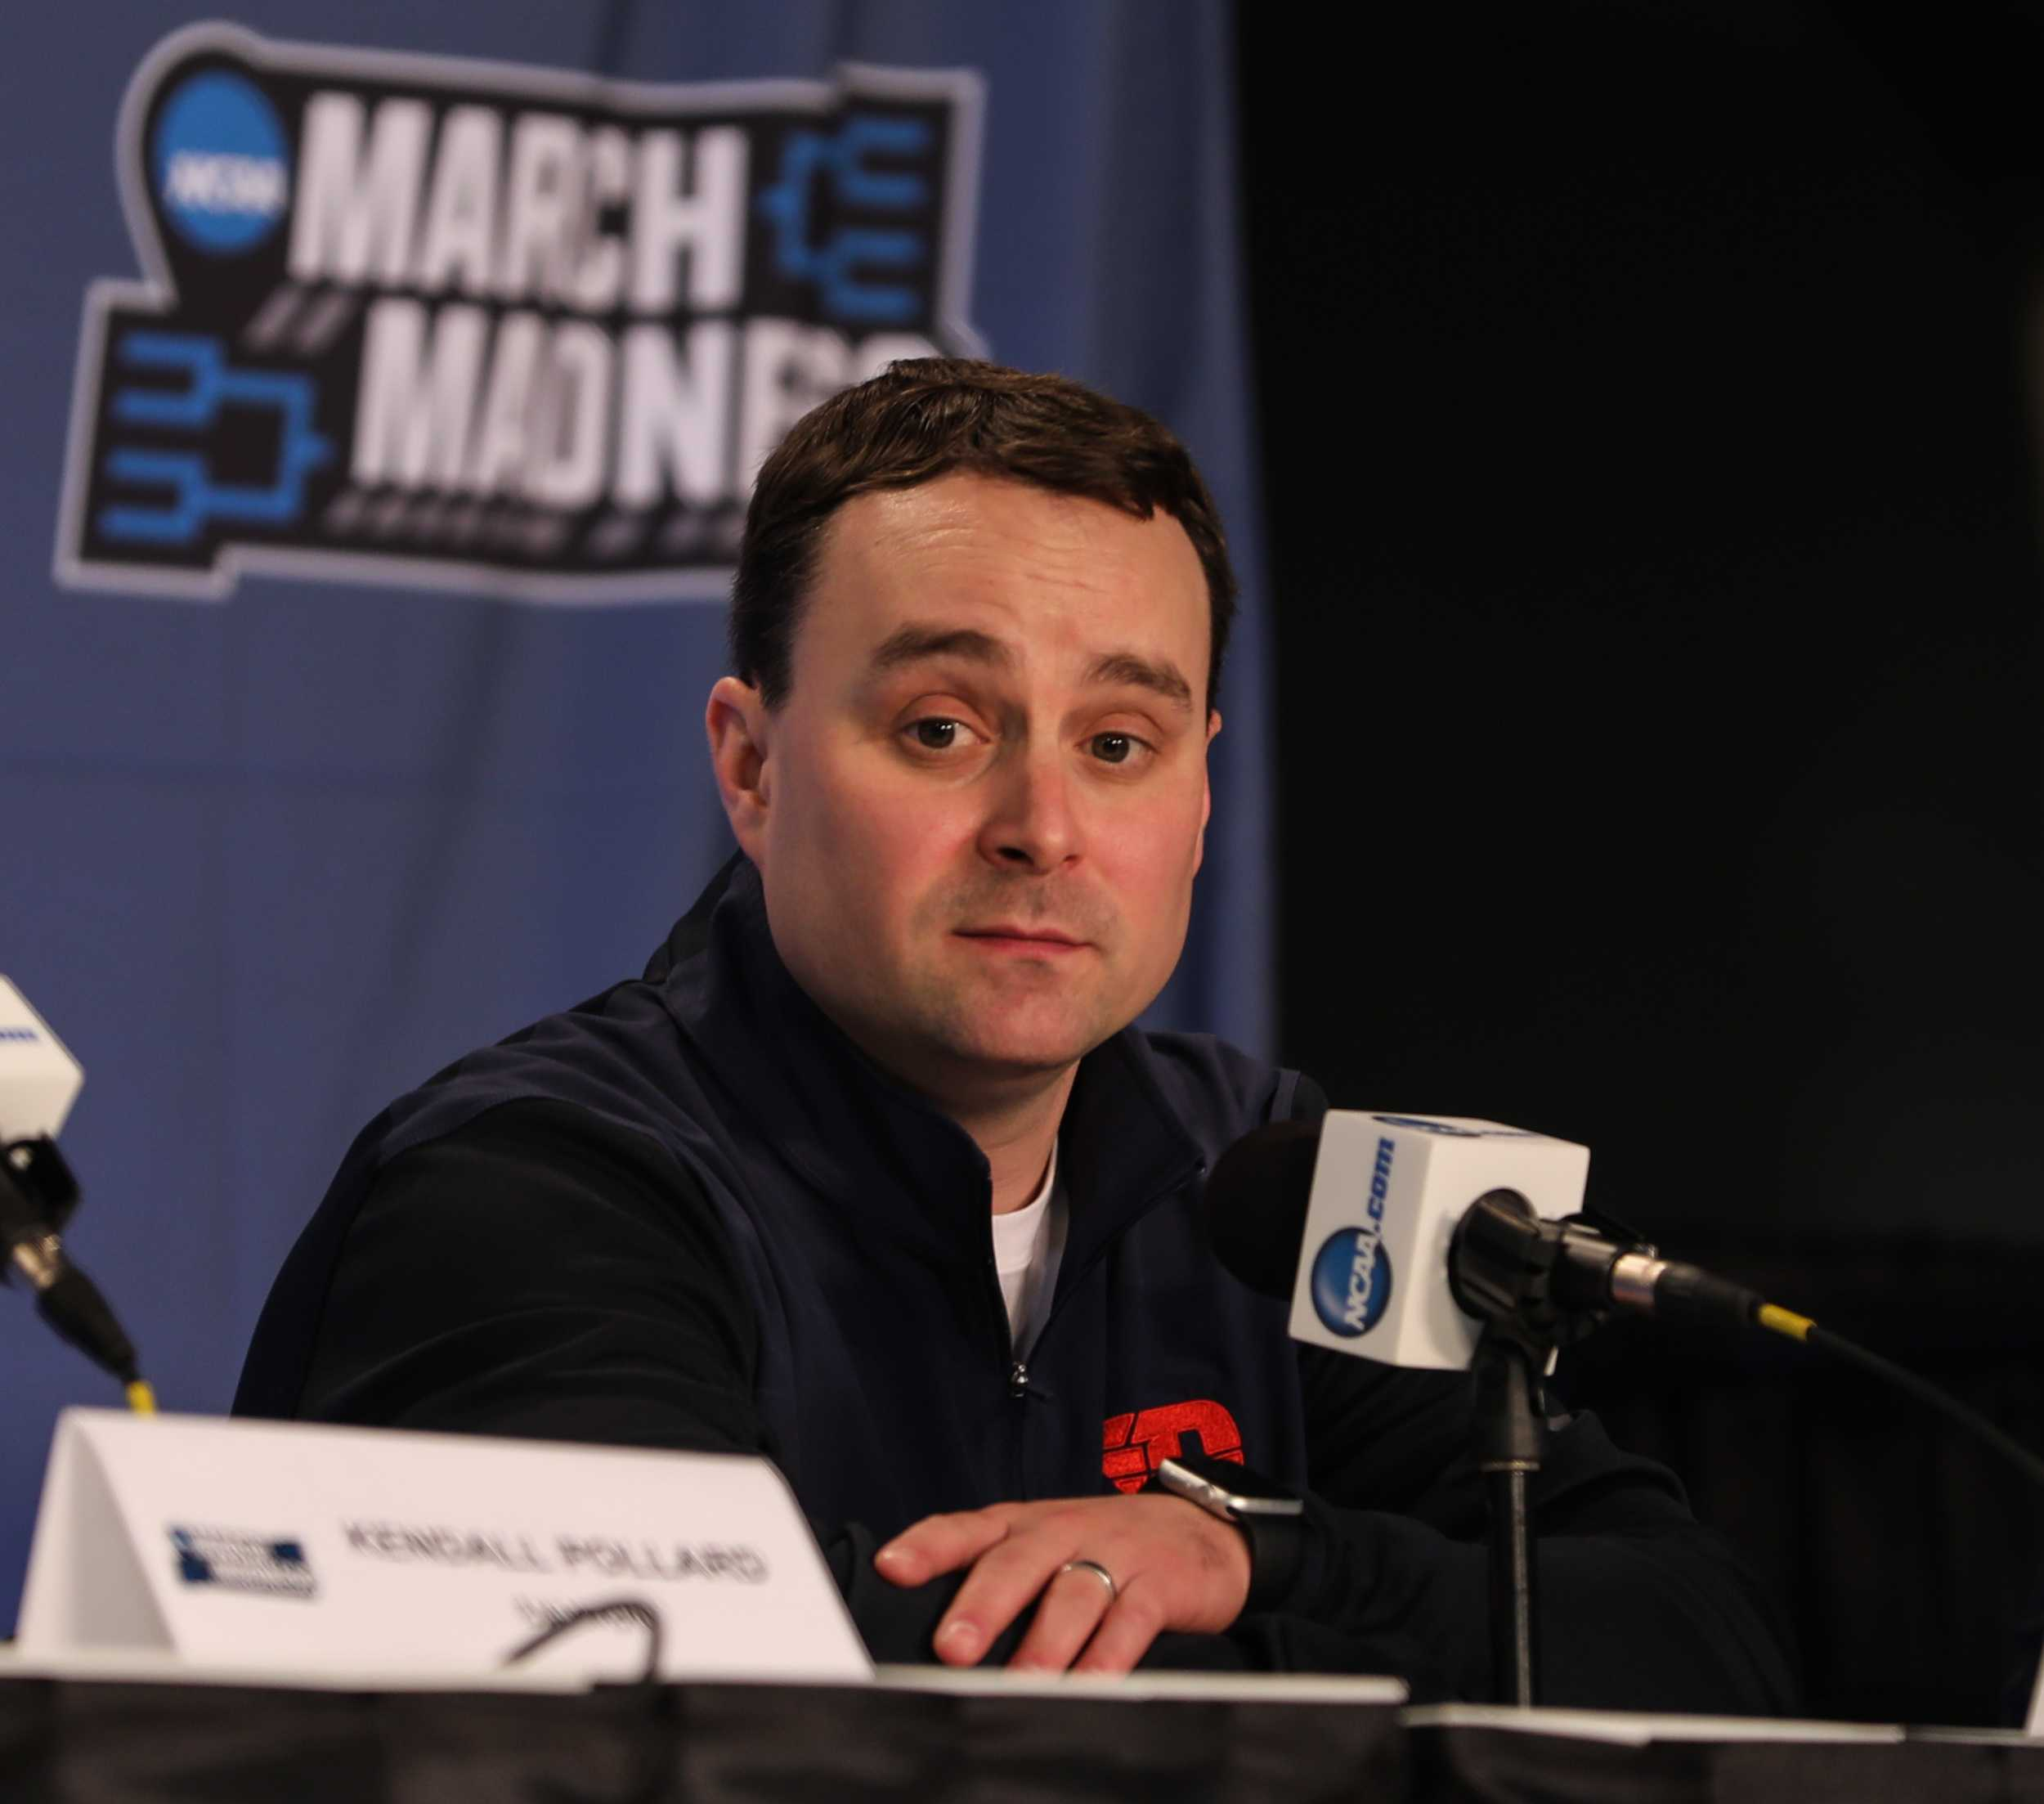 Dayton's head coach Archie Miller takes questions from the media during a pre-game press conference the day before the Flyers take on the Shockers in Indianapolis. (Mar. 16, 2017)